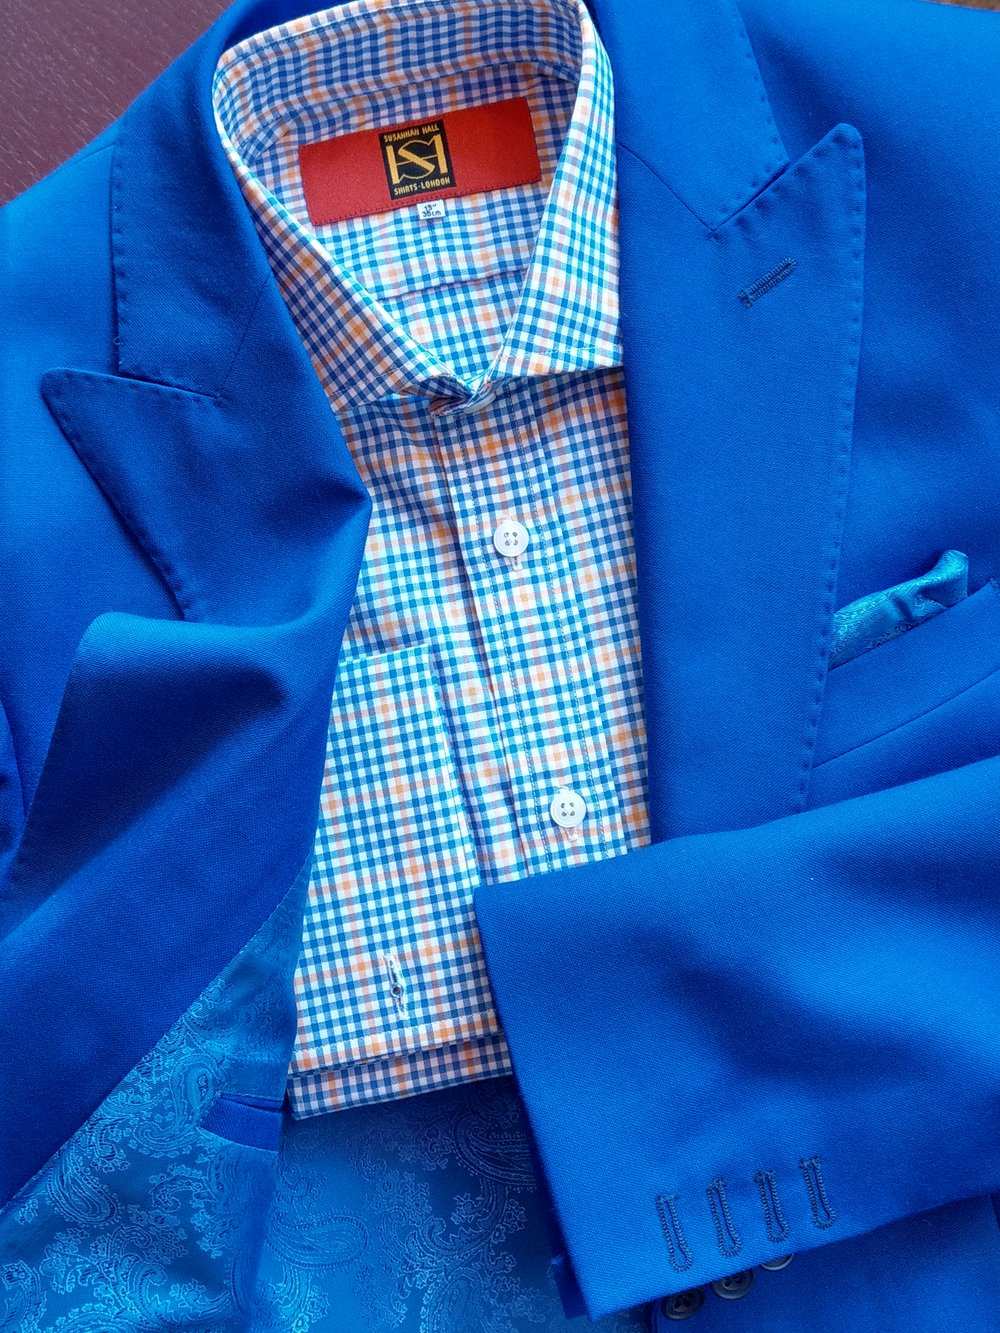 blue-yellow-check-shirt-british-made-uk-susannah-hall-tailor.jpg